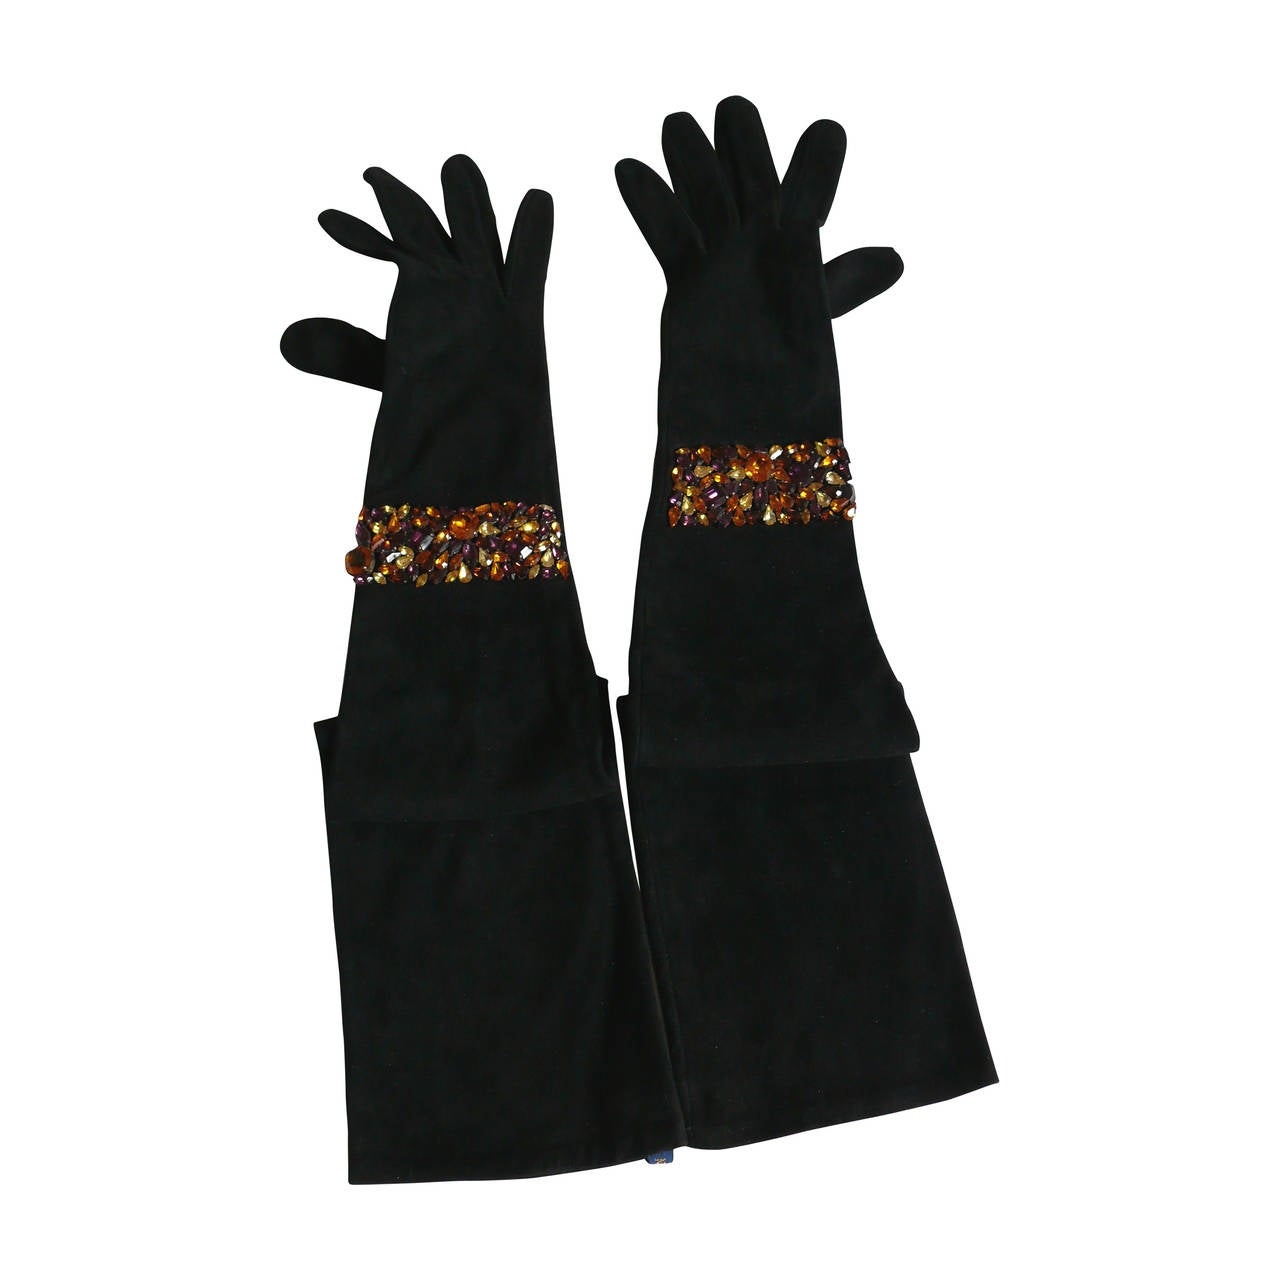 Isabel Canovas Rare Bejeweled Suede Opera Gloves